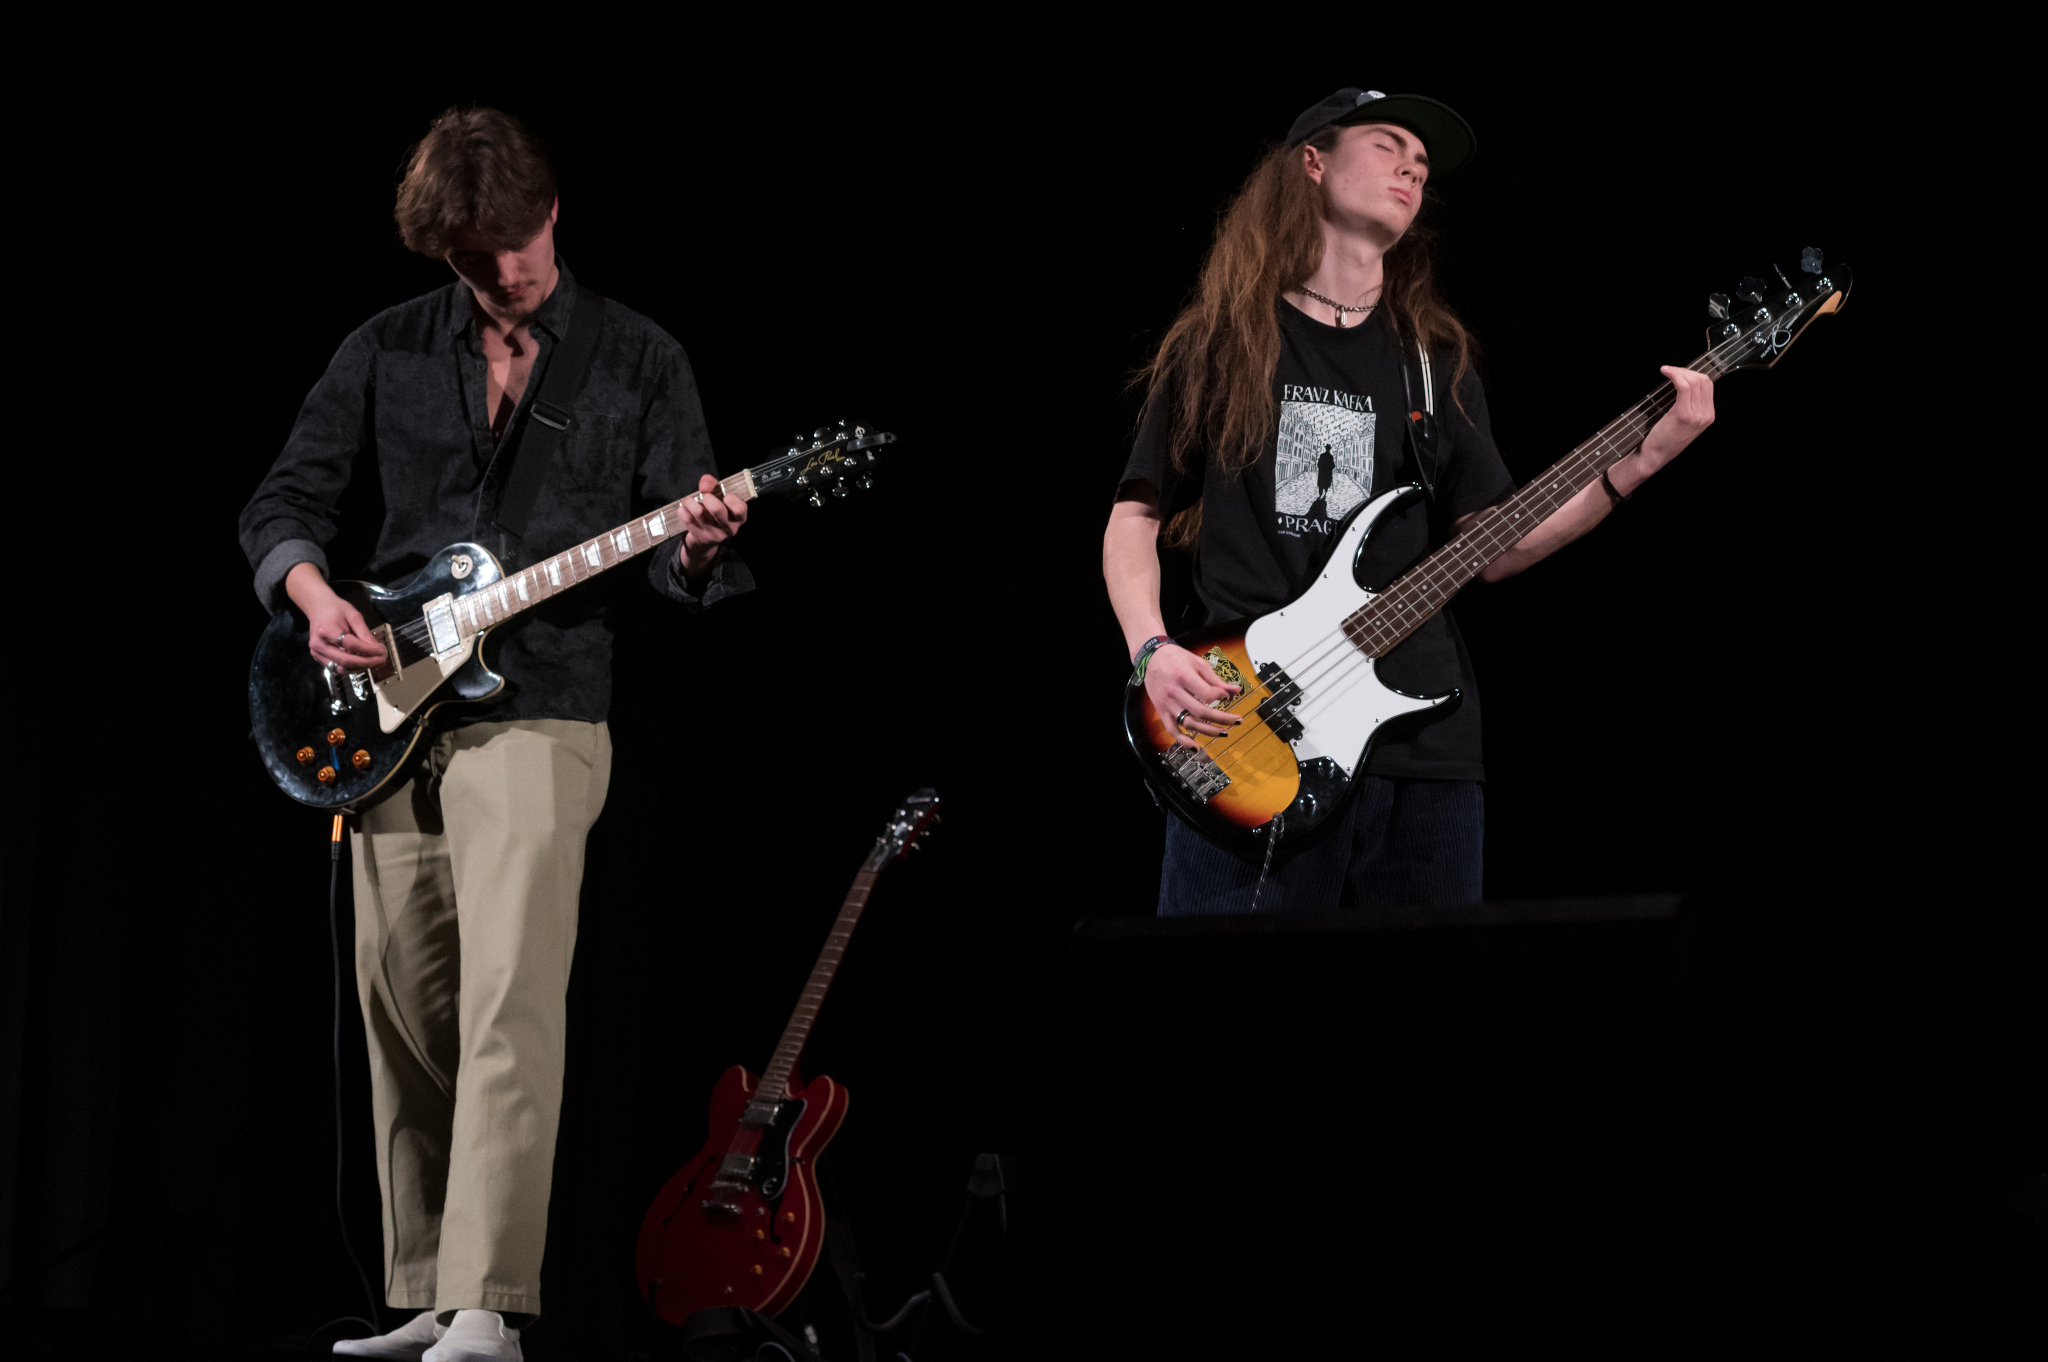 jugendkulturjahr-2020-ratingen-jkj2020-YouthDay-LiquidCurtain02